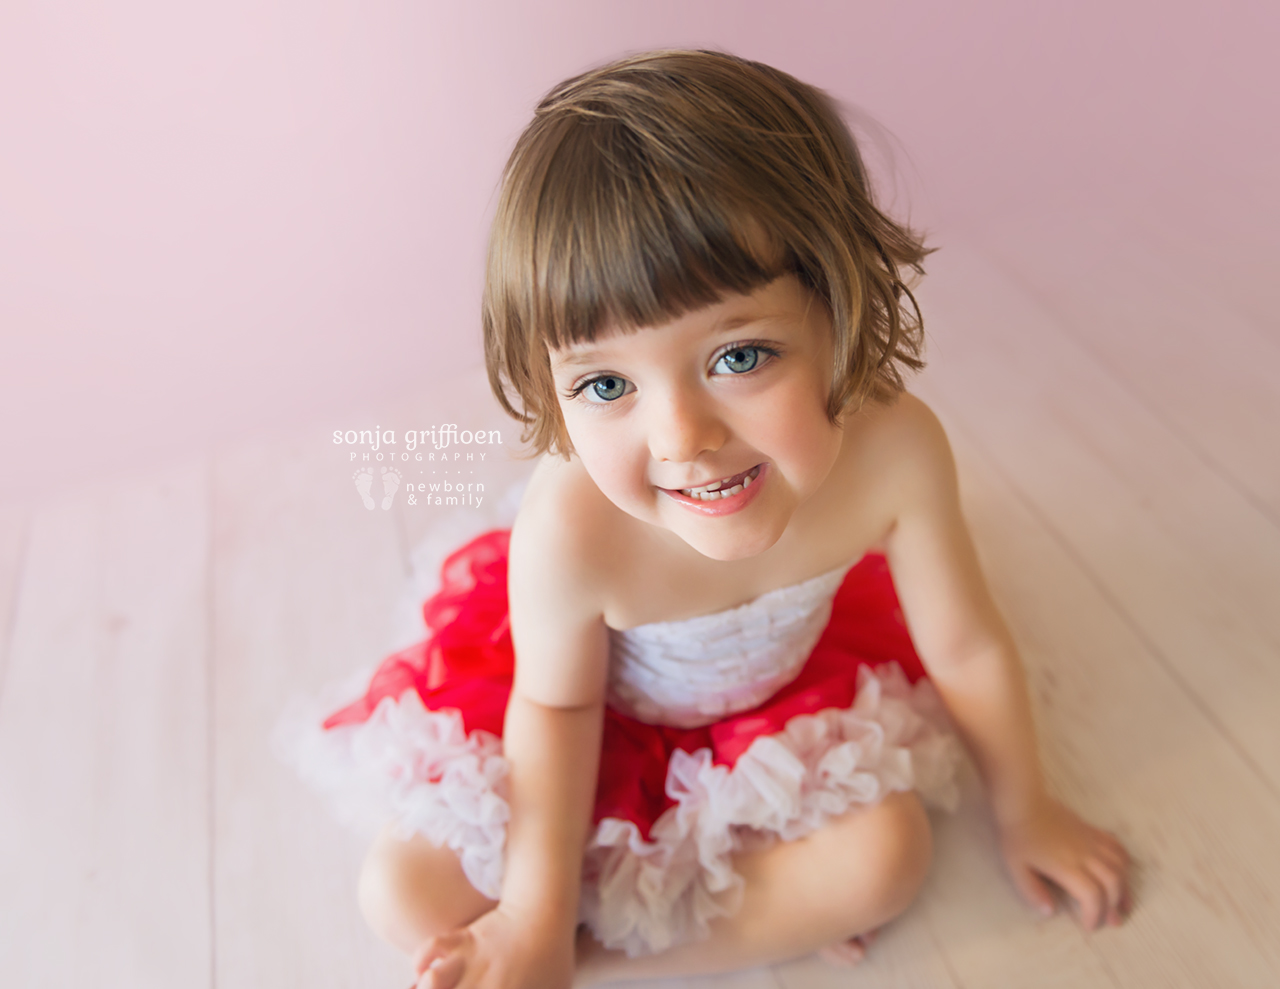 Bonnie-3-years-Brisbane-baby-child-photographer-Sonja-Griffioen-09.jpg